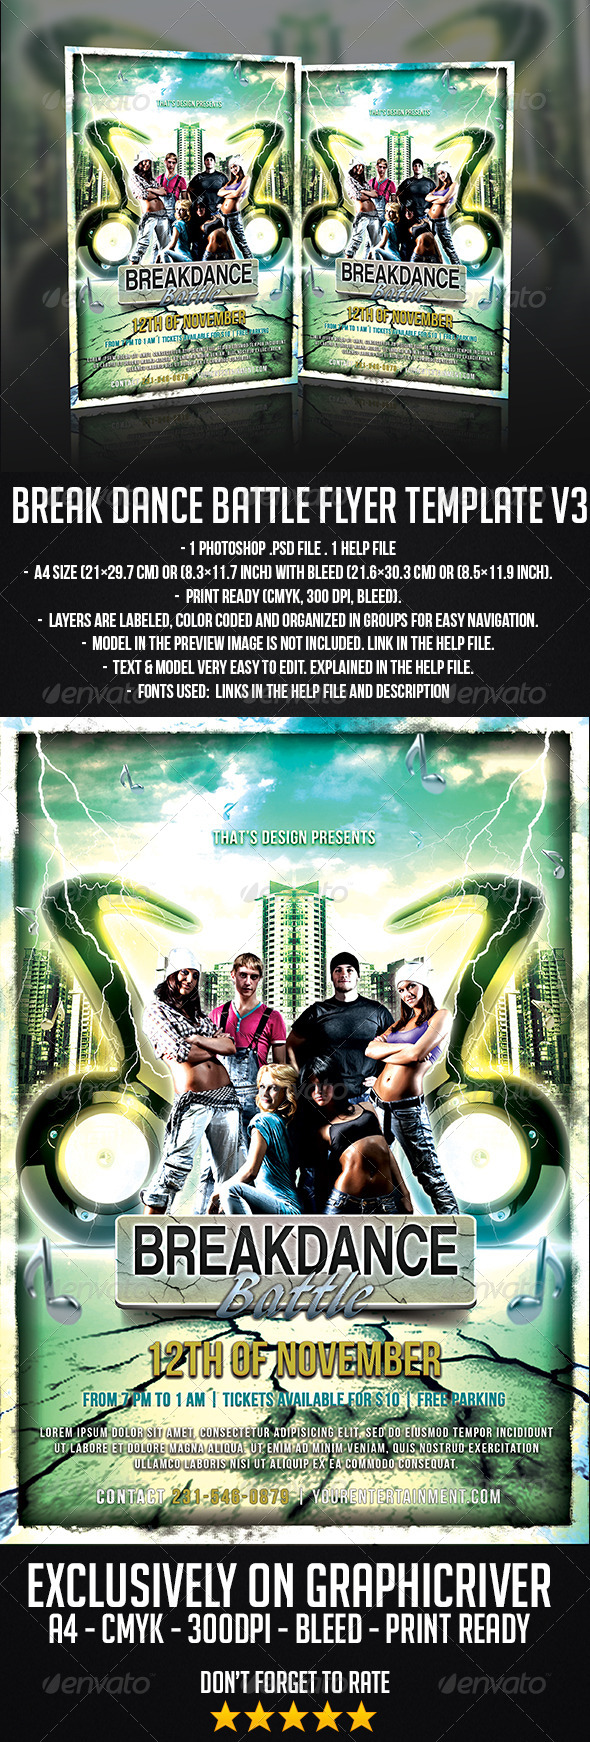 Break Dance Battle Flyer Template V3 - Miscellaneous Events